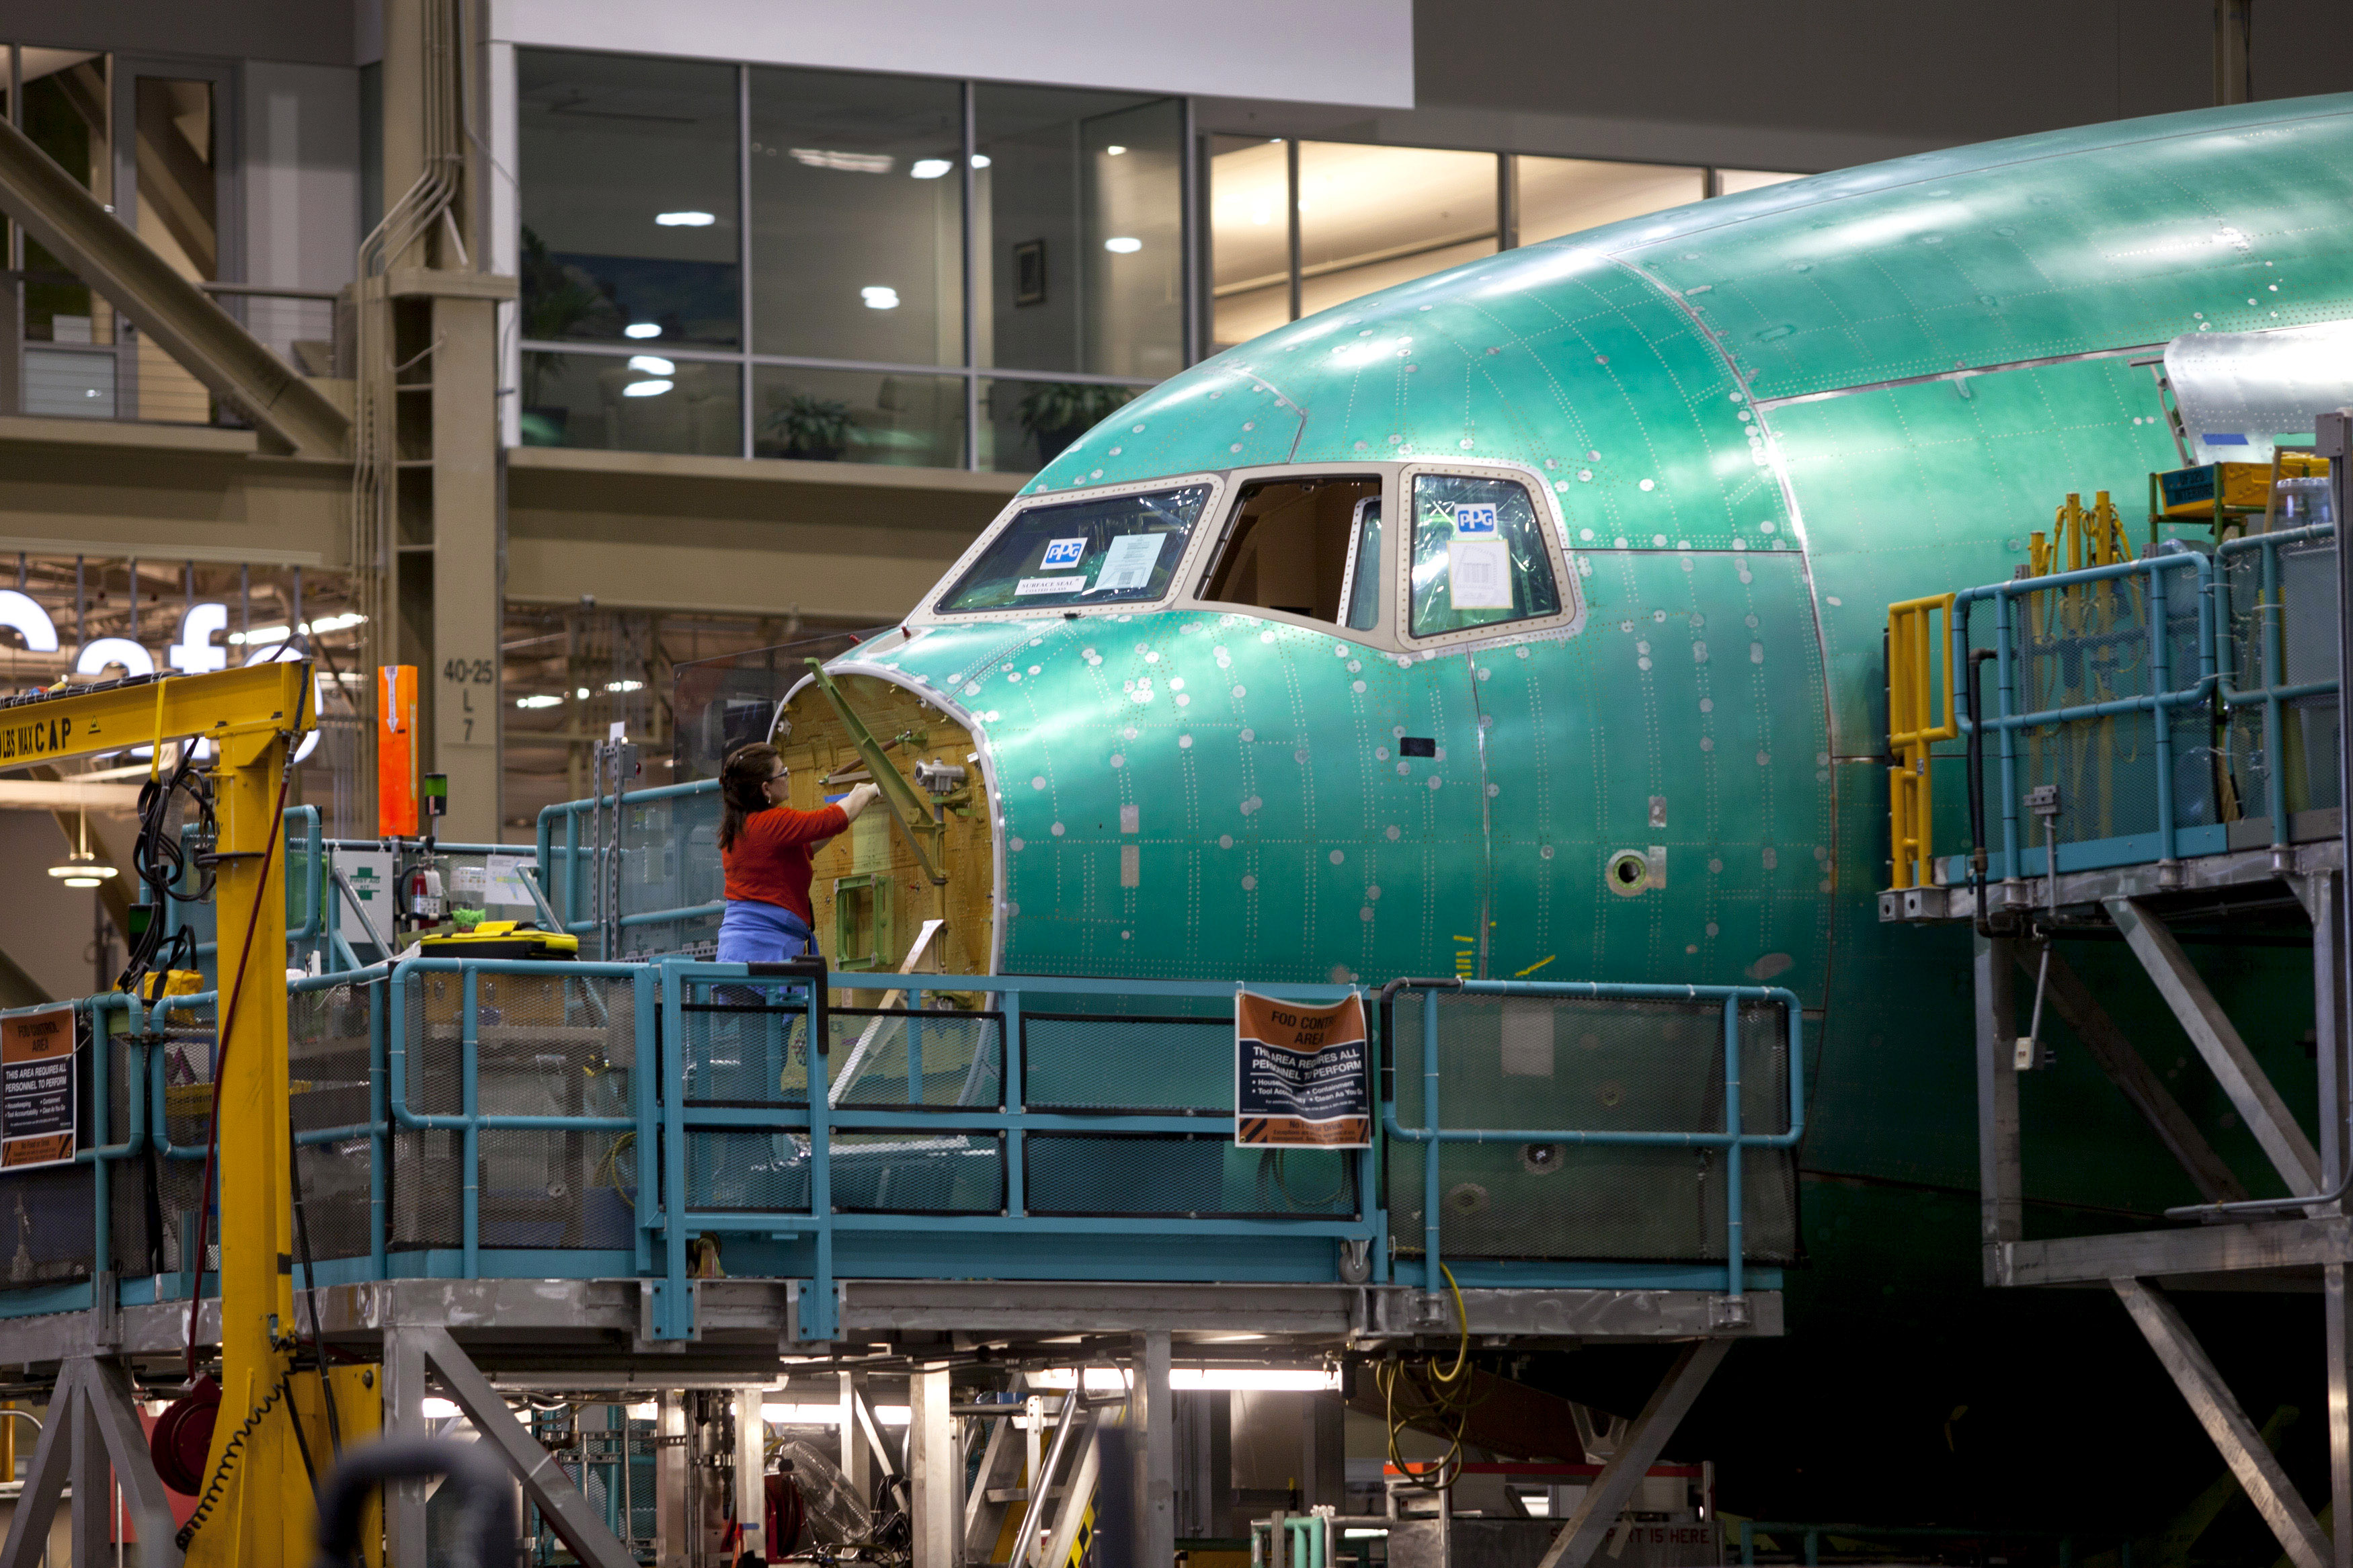 Operations Inside Boeing Co's 777 Factory And Robotics Painting Facility